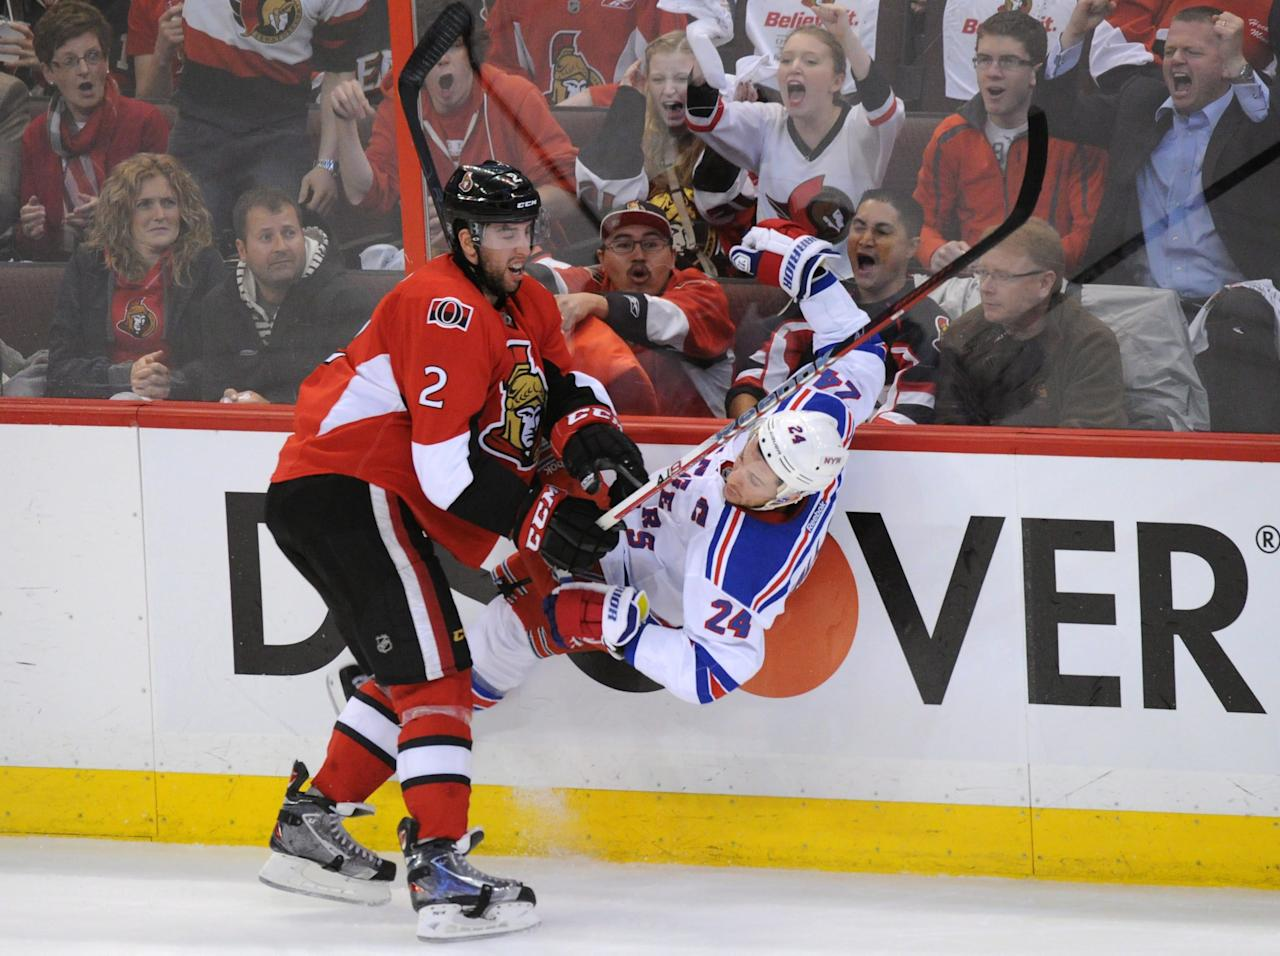 Ottawa Senators' Jared Cowen hits New York Rangers' Ryan Callahan during the first period of Game 6 of a first-round NHL Stanley Cup playoff hockey series, in Ottawa, Ontario, on Monday, April 23, 2012. (AP Photo/The Canadian Press, Sean Kilpatrick)